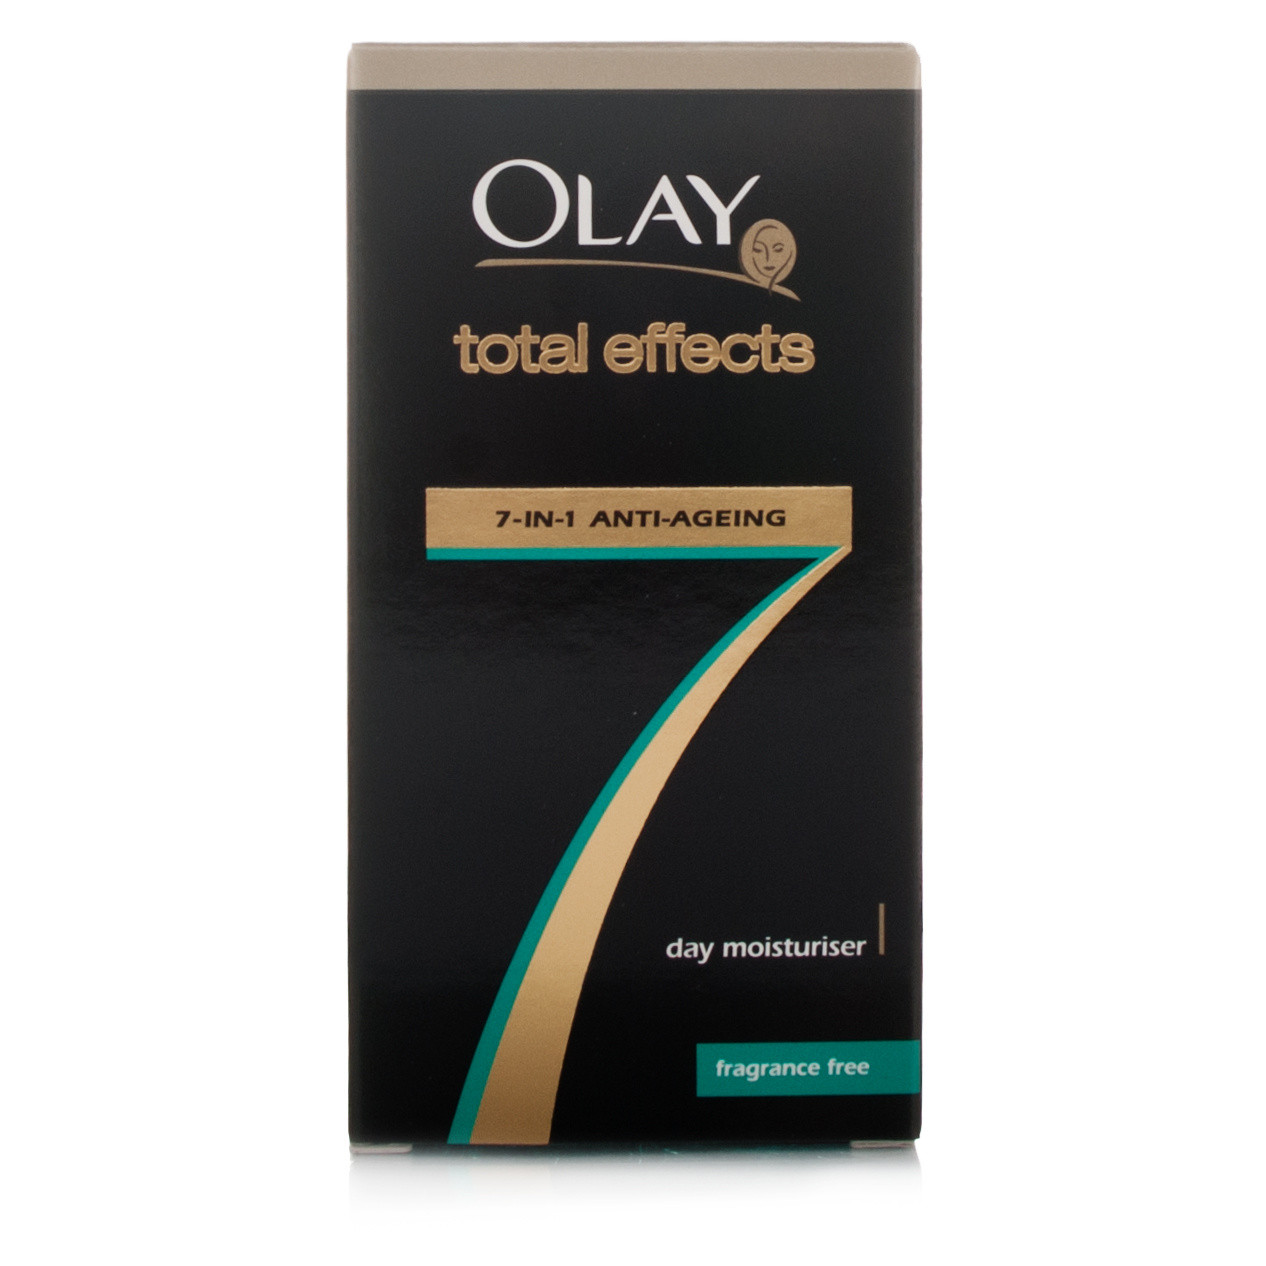 Olay Total Effects 7-in-1 Anti-Ageing Day Moisturiser Fragrance Free